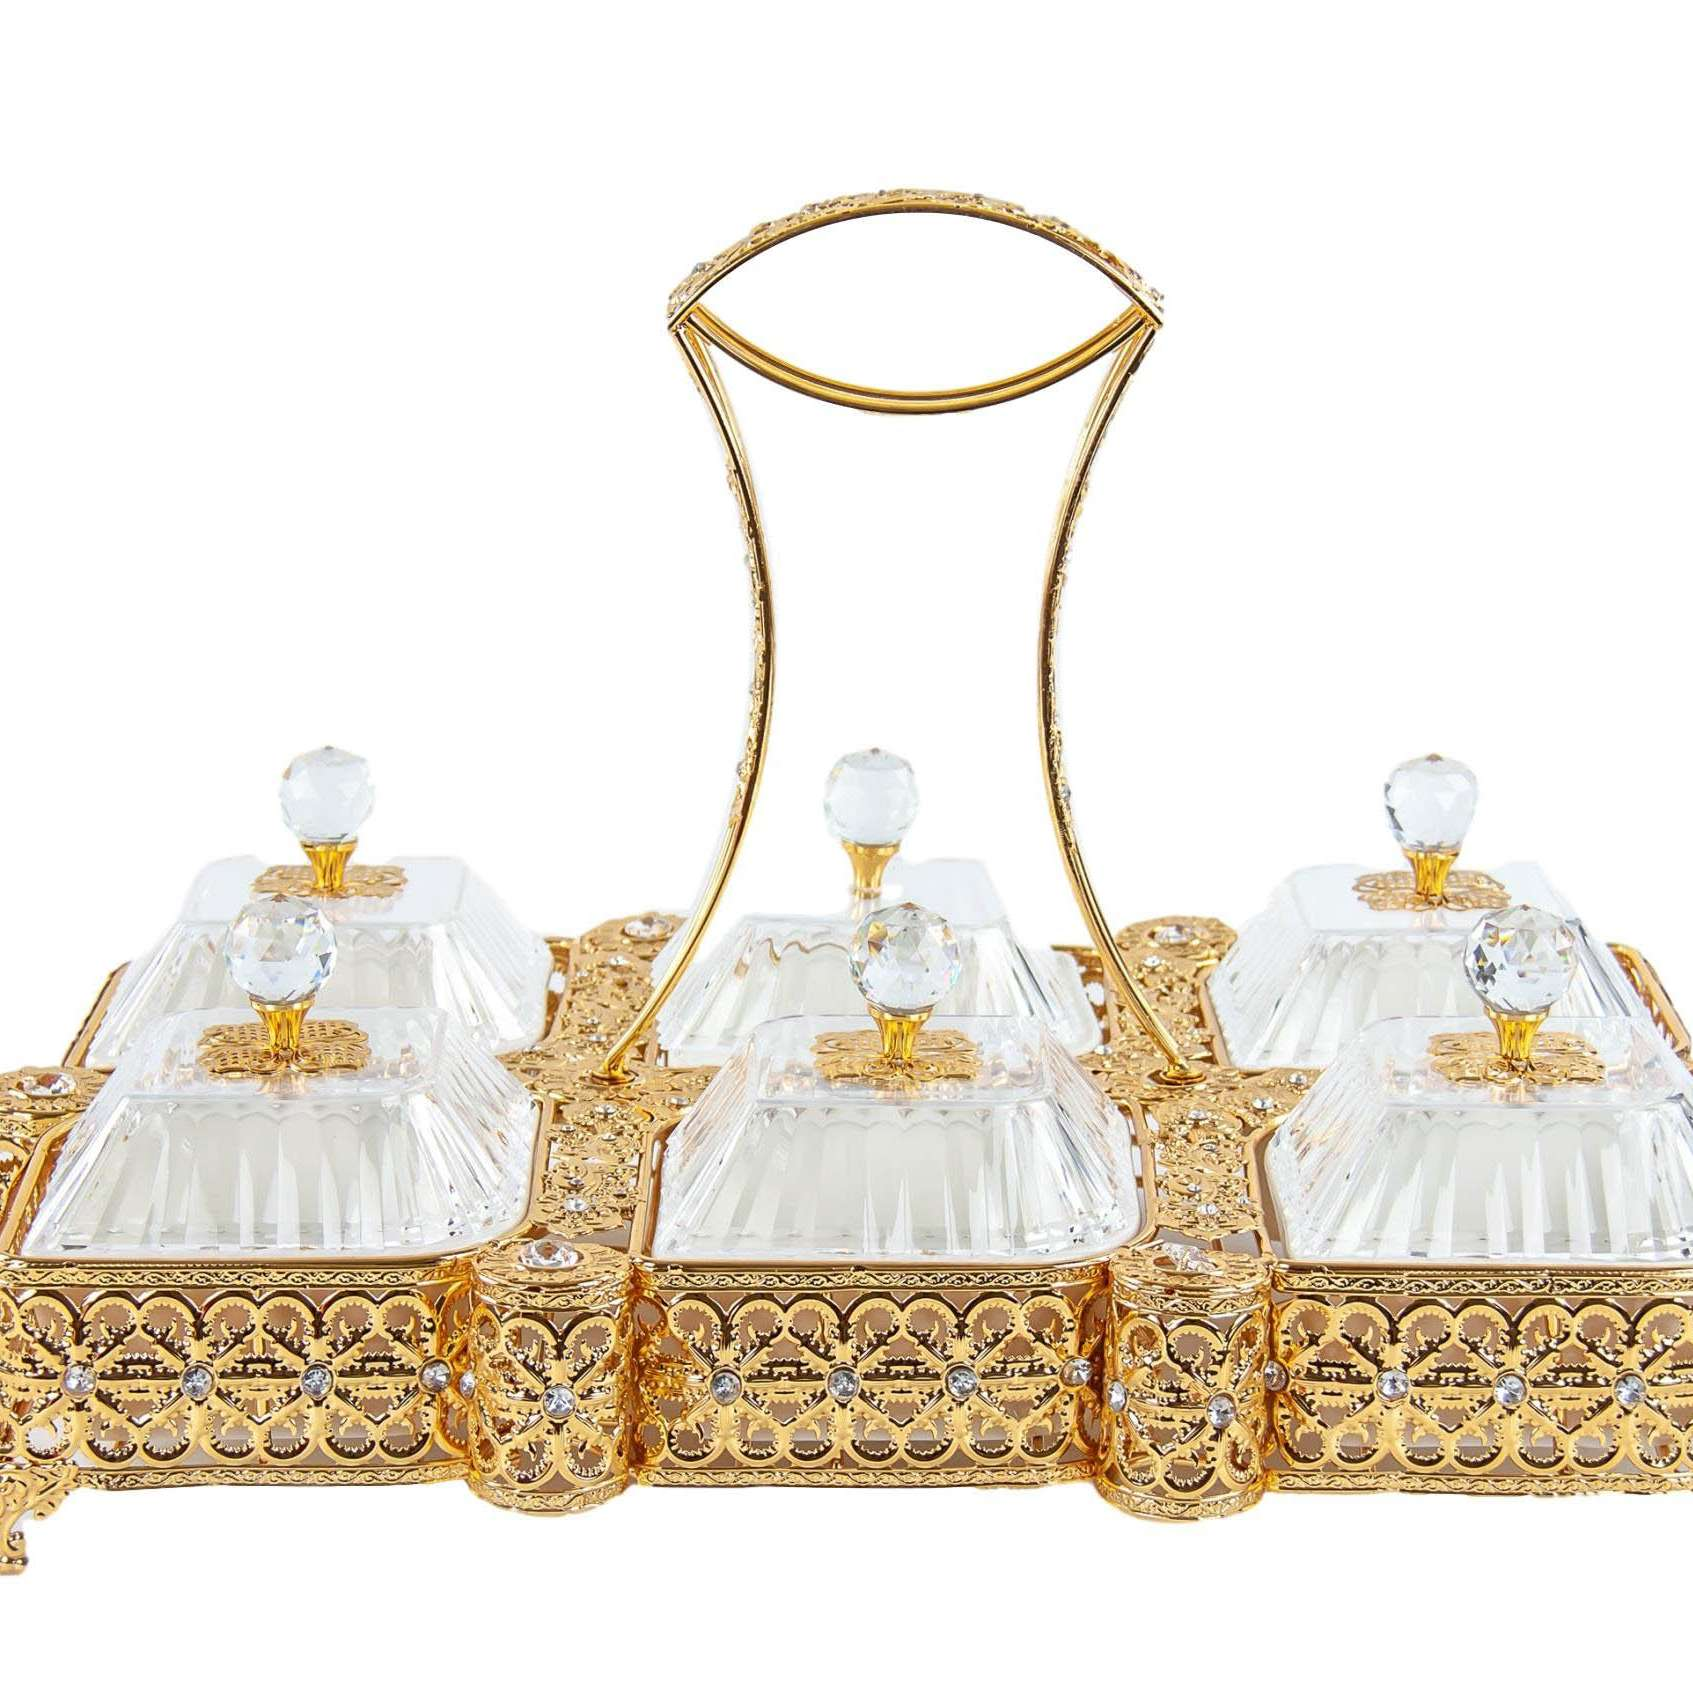 Ornate Party Tray Rectangular Gold Embroidery Serving Tray 6 Bowls With Lids 52c